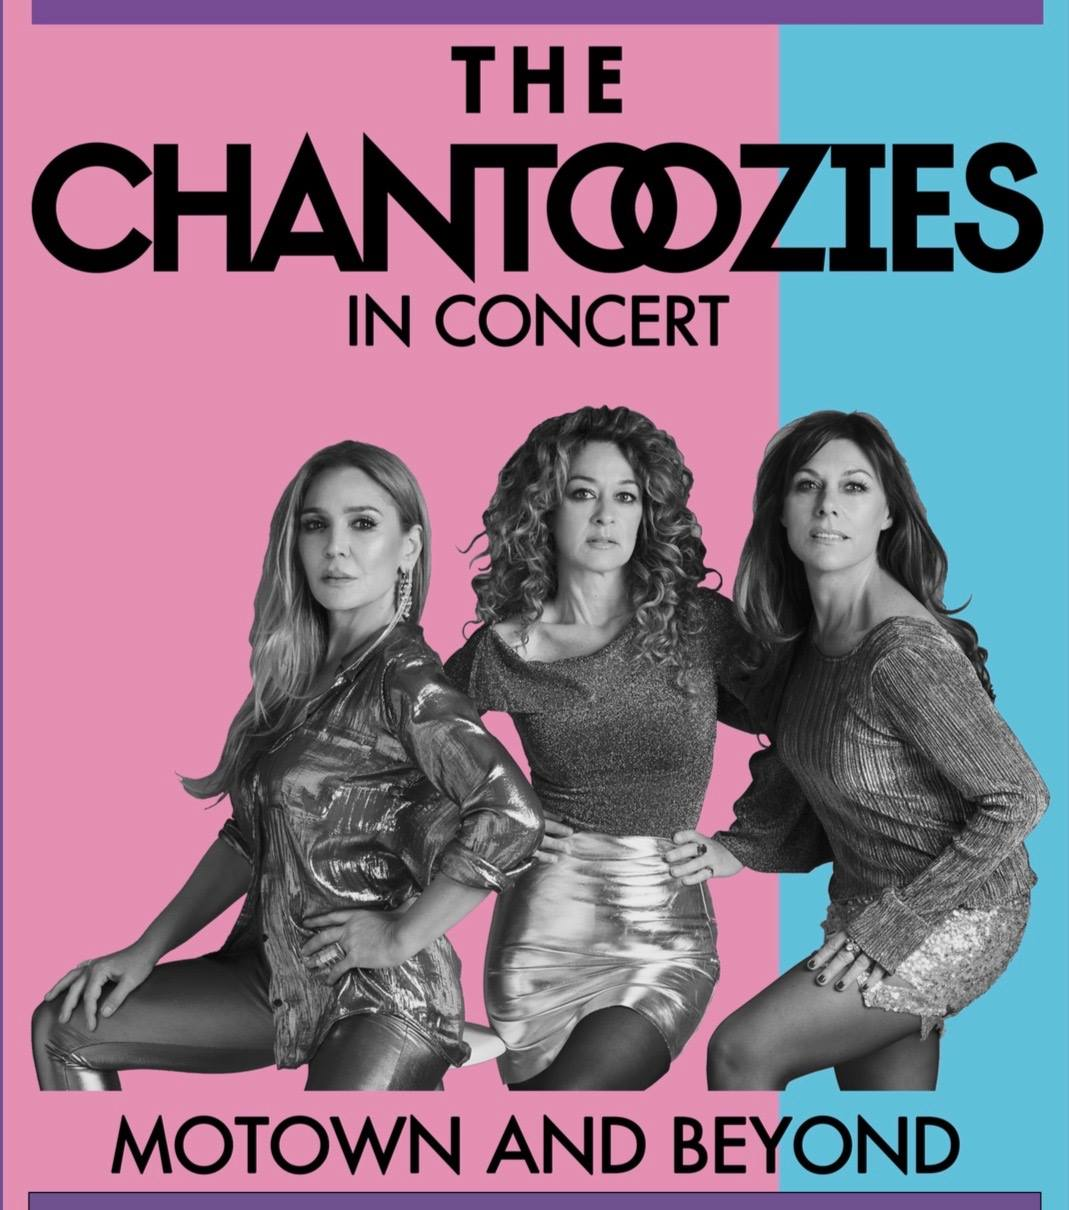 The Chantoozies MOTOWN